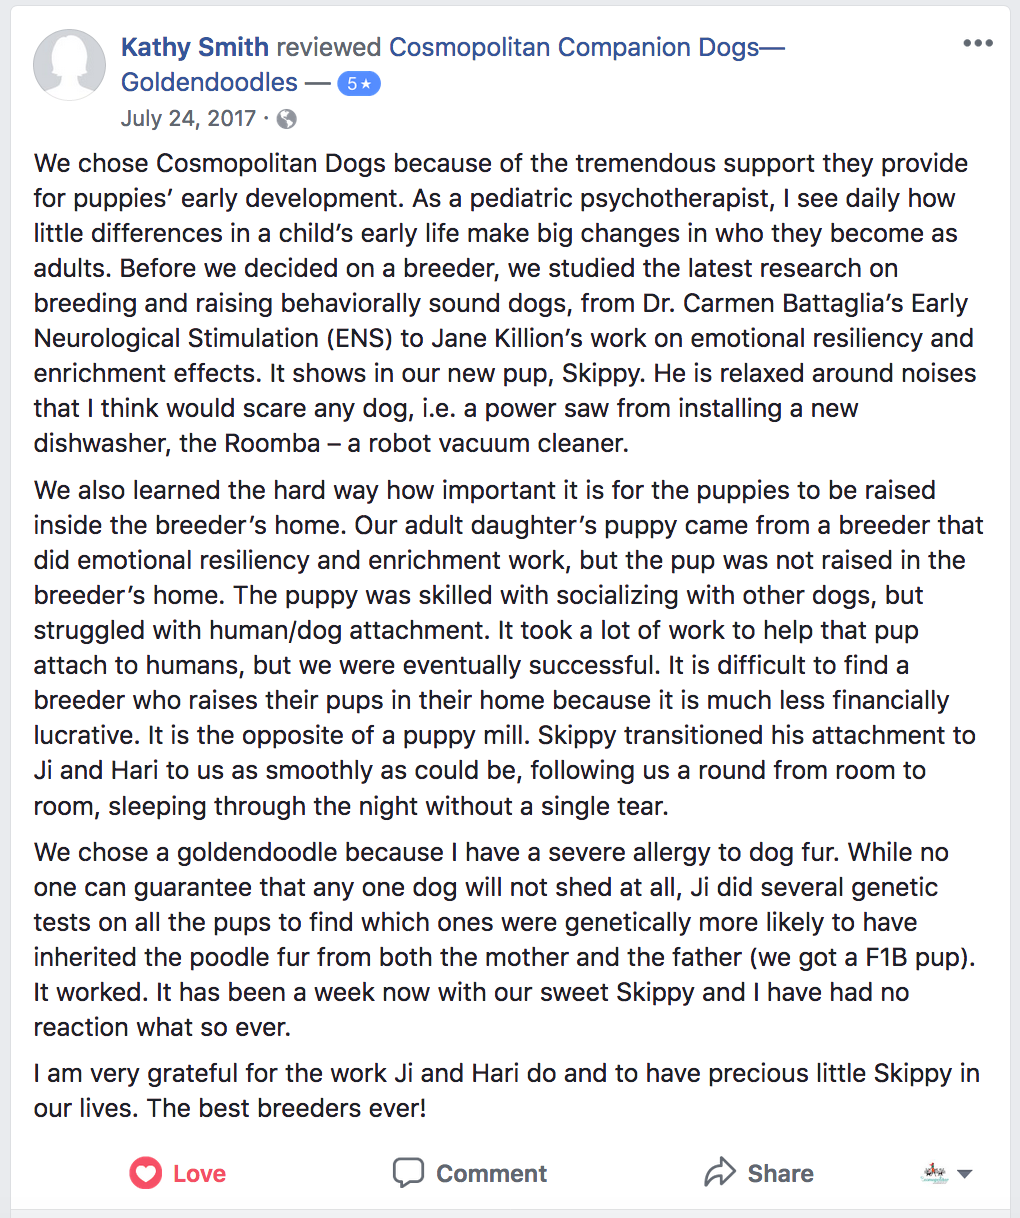 Cosmopolitan Companion Dogs Review